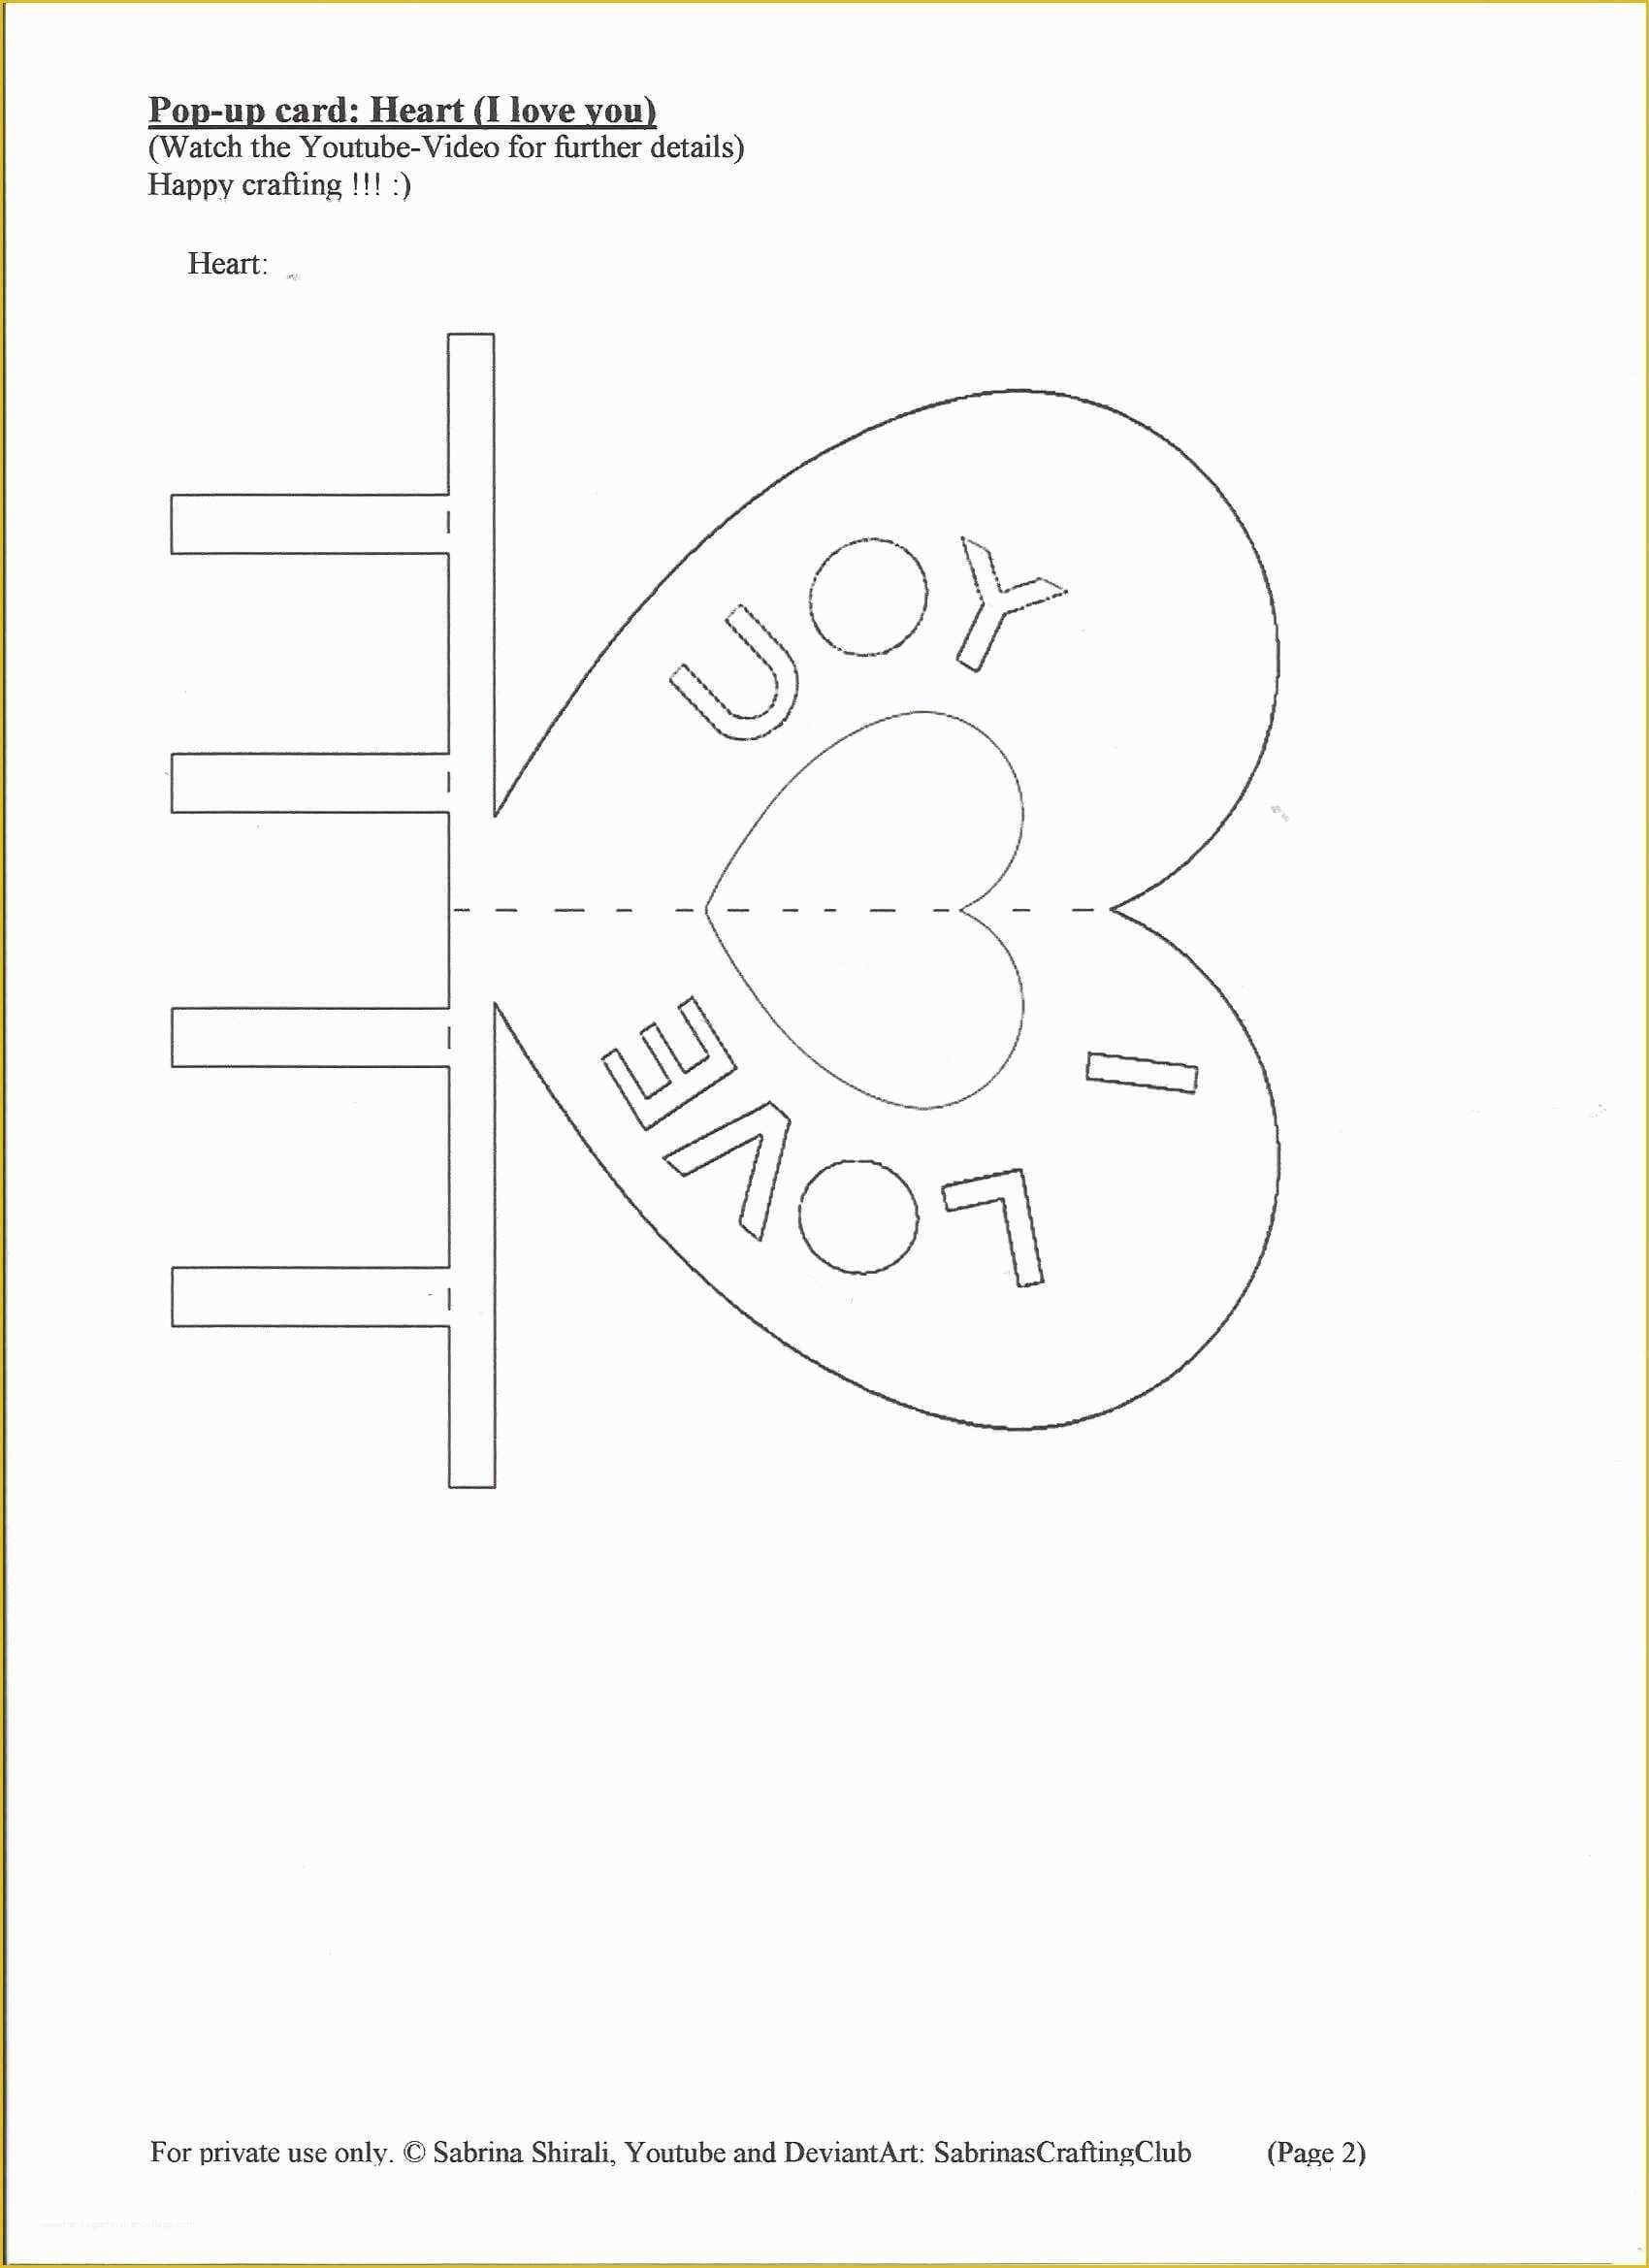 044 Template Ideas Pop Up Cards Templates Card Free Download In I Love You Pop Up Card Template